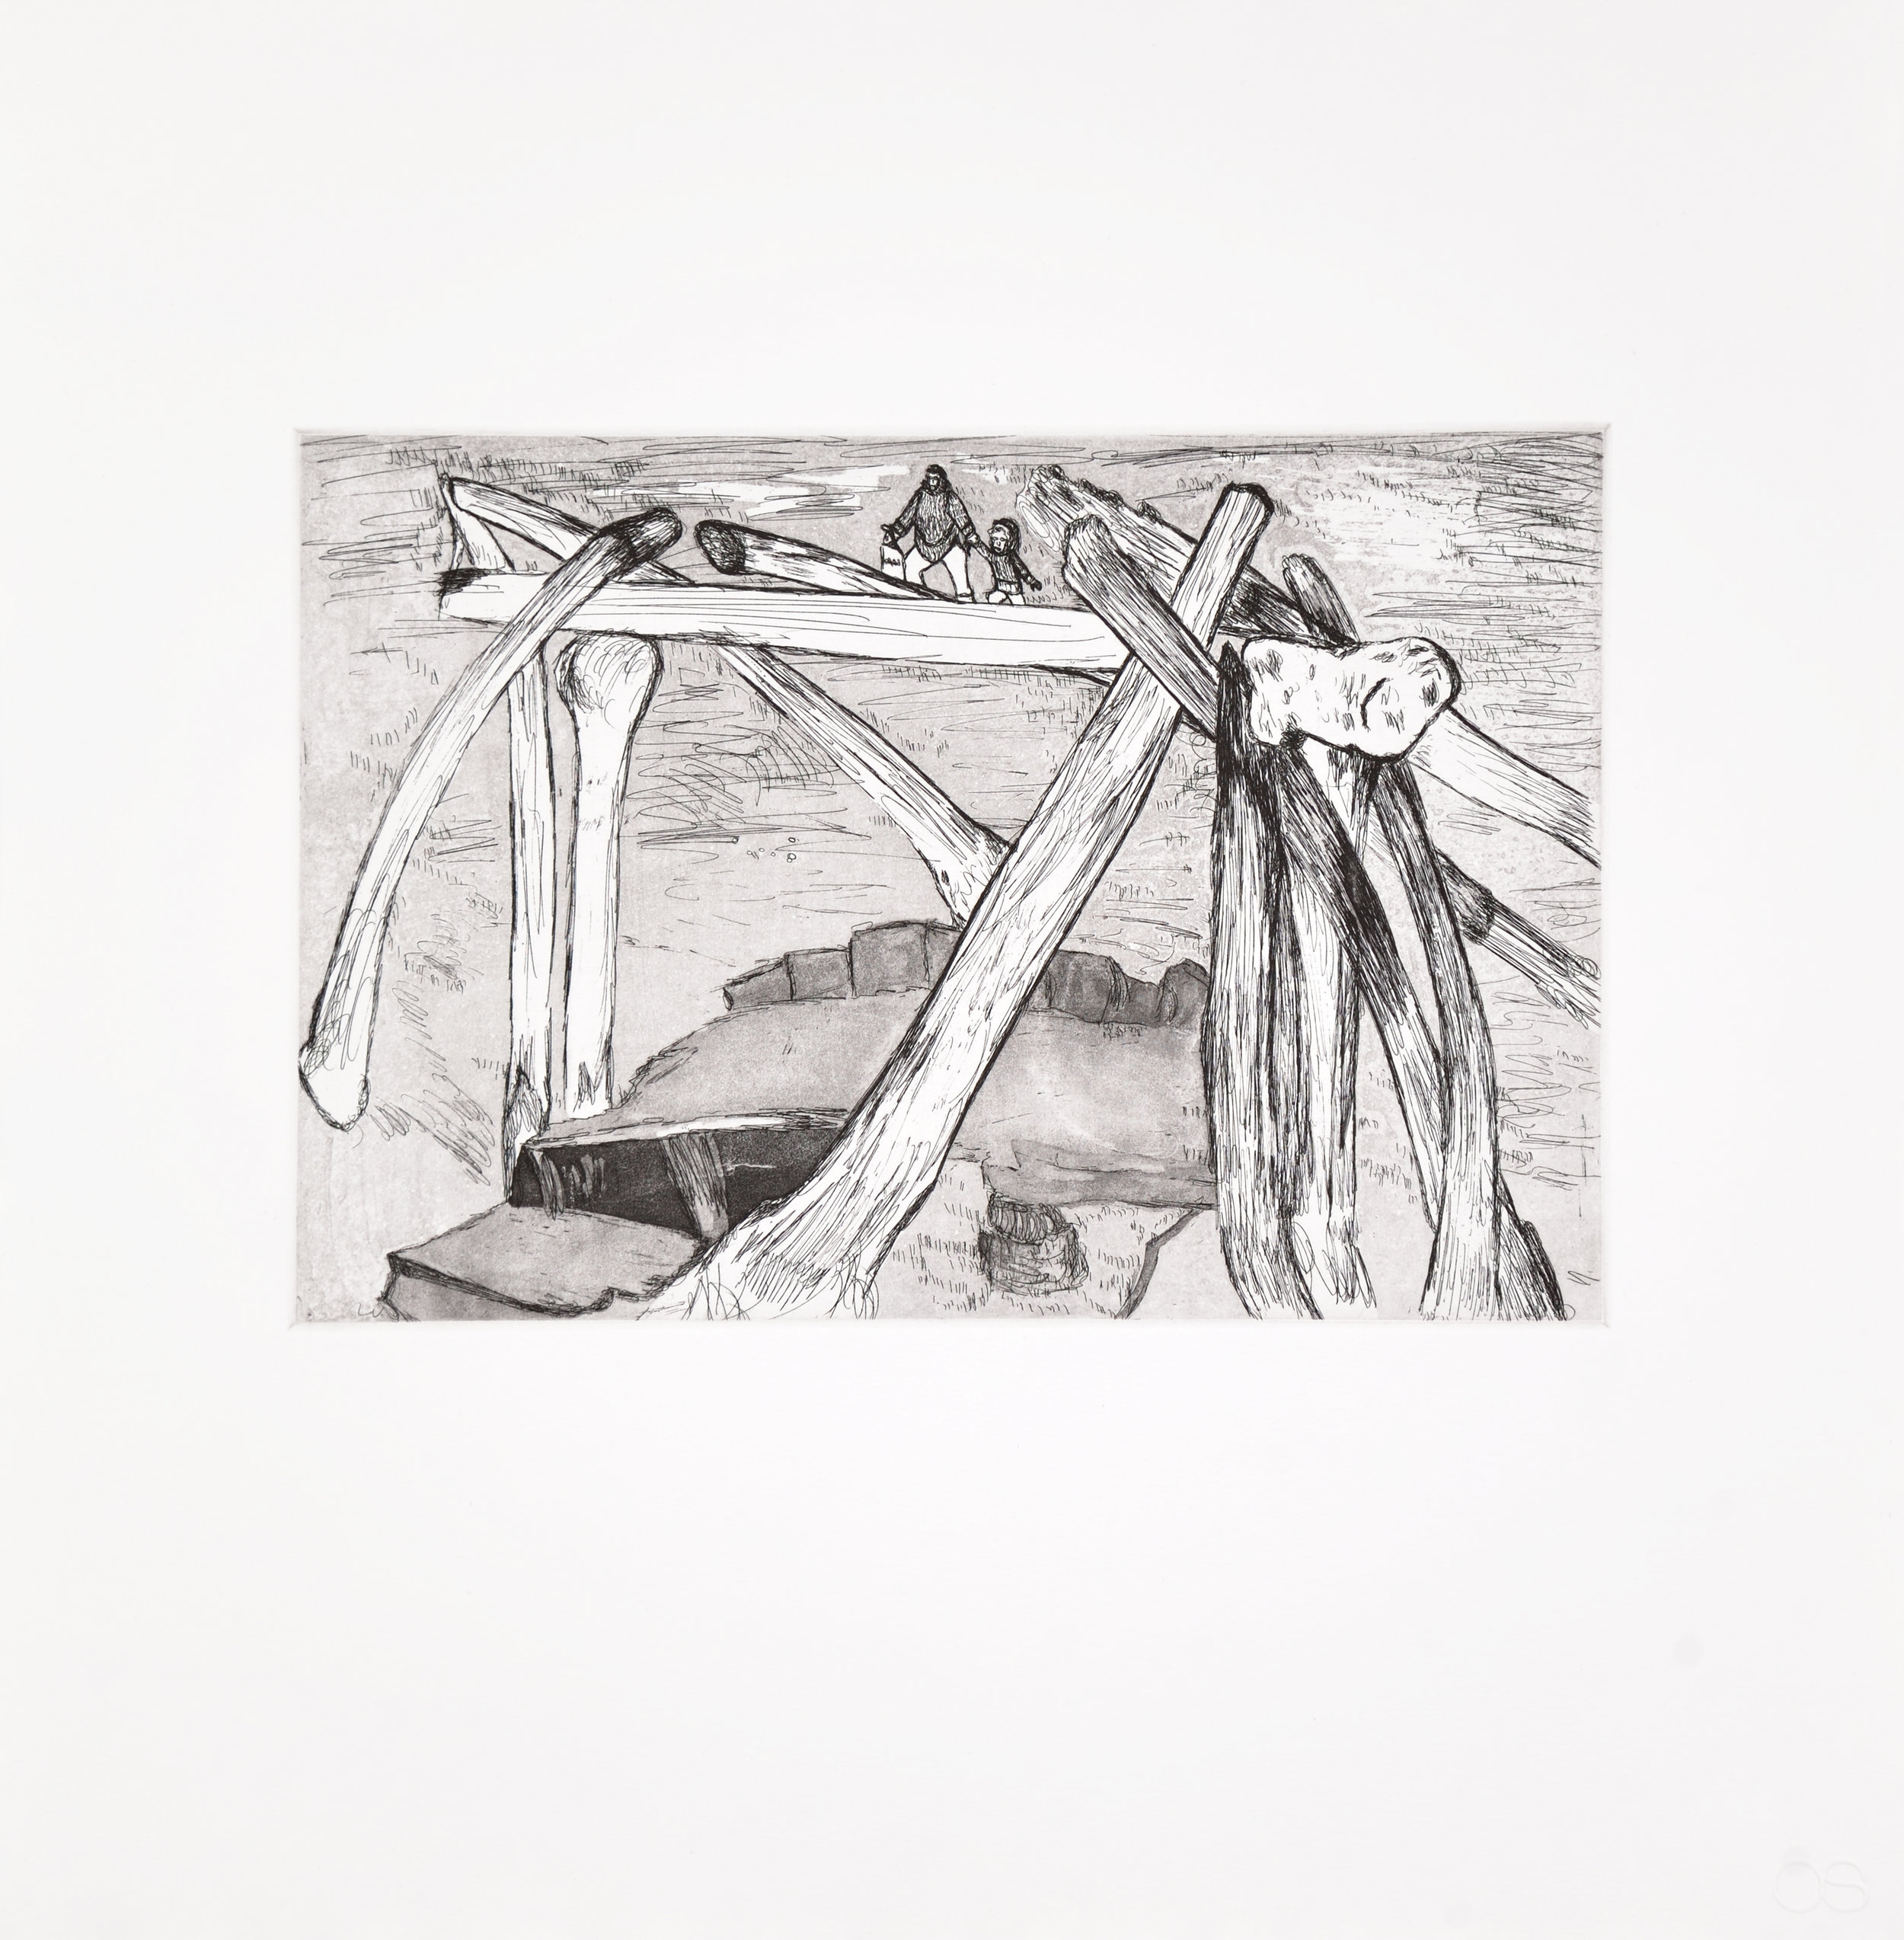 17-19 SHUVINAI ASHOONA Journey to the Past Etching & Aquatint Paper: Hahnemuhle Copperplate Bright White Printer: Open Studio 40.7 x 39.3 cm $600